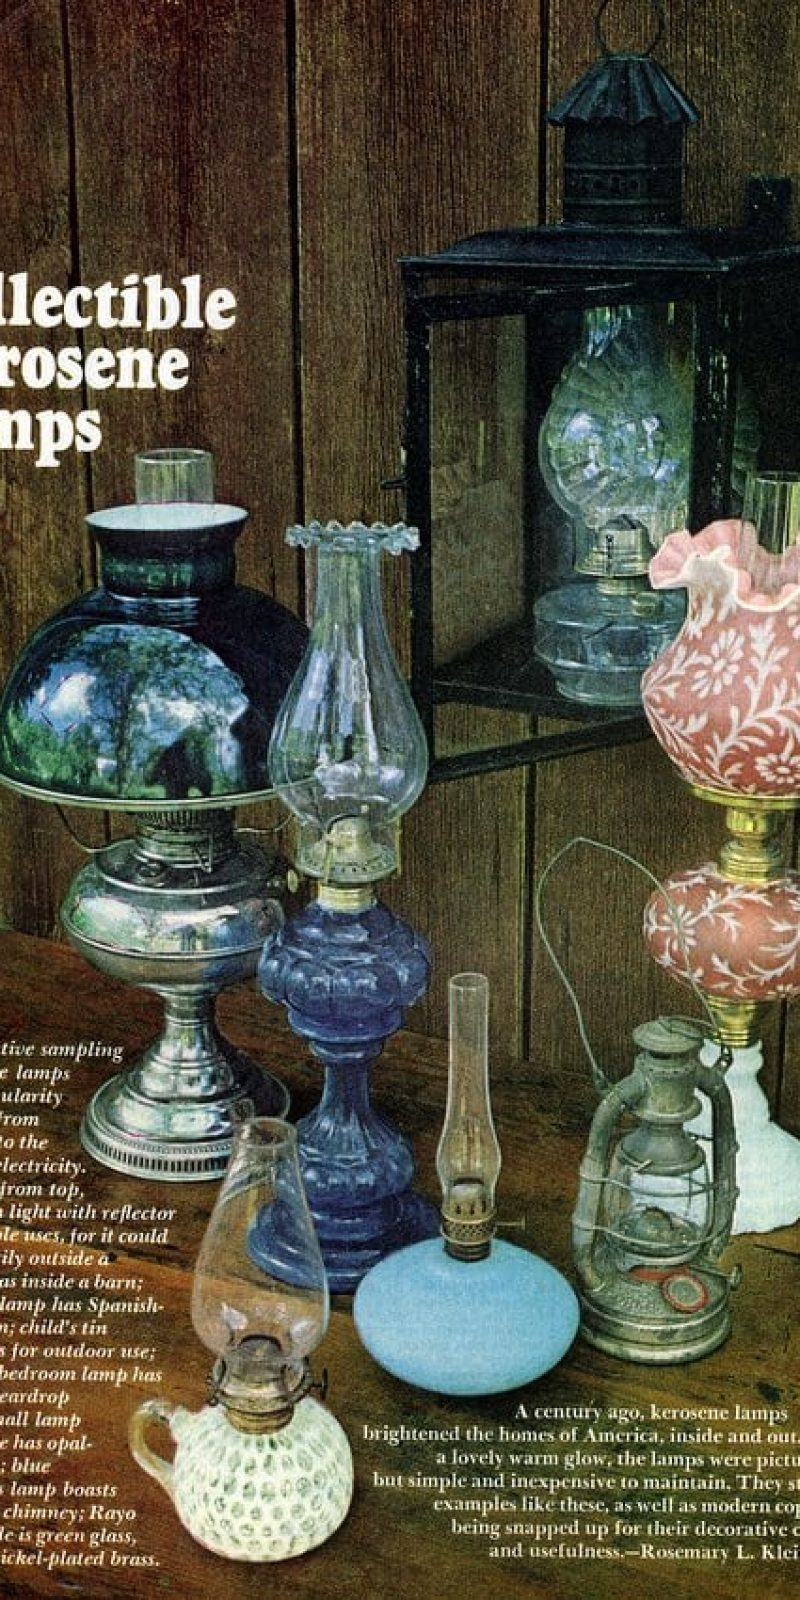 Modern Kerosene Lamp Collectible Antique Kerosene Lamps 1975 Click Americana